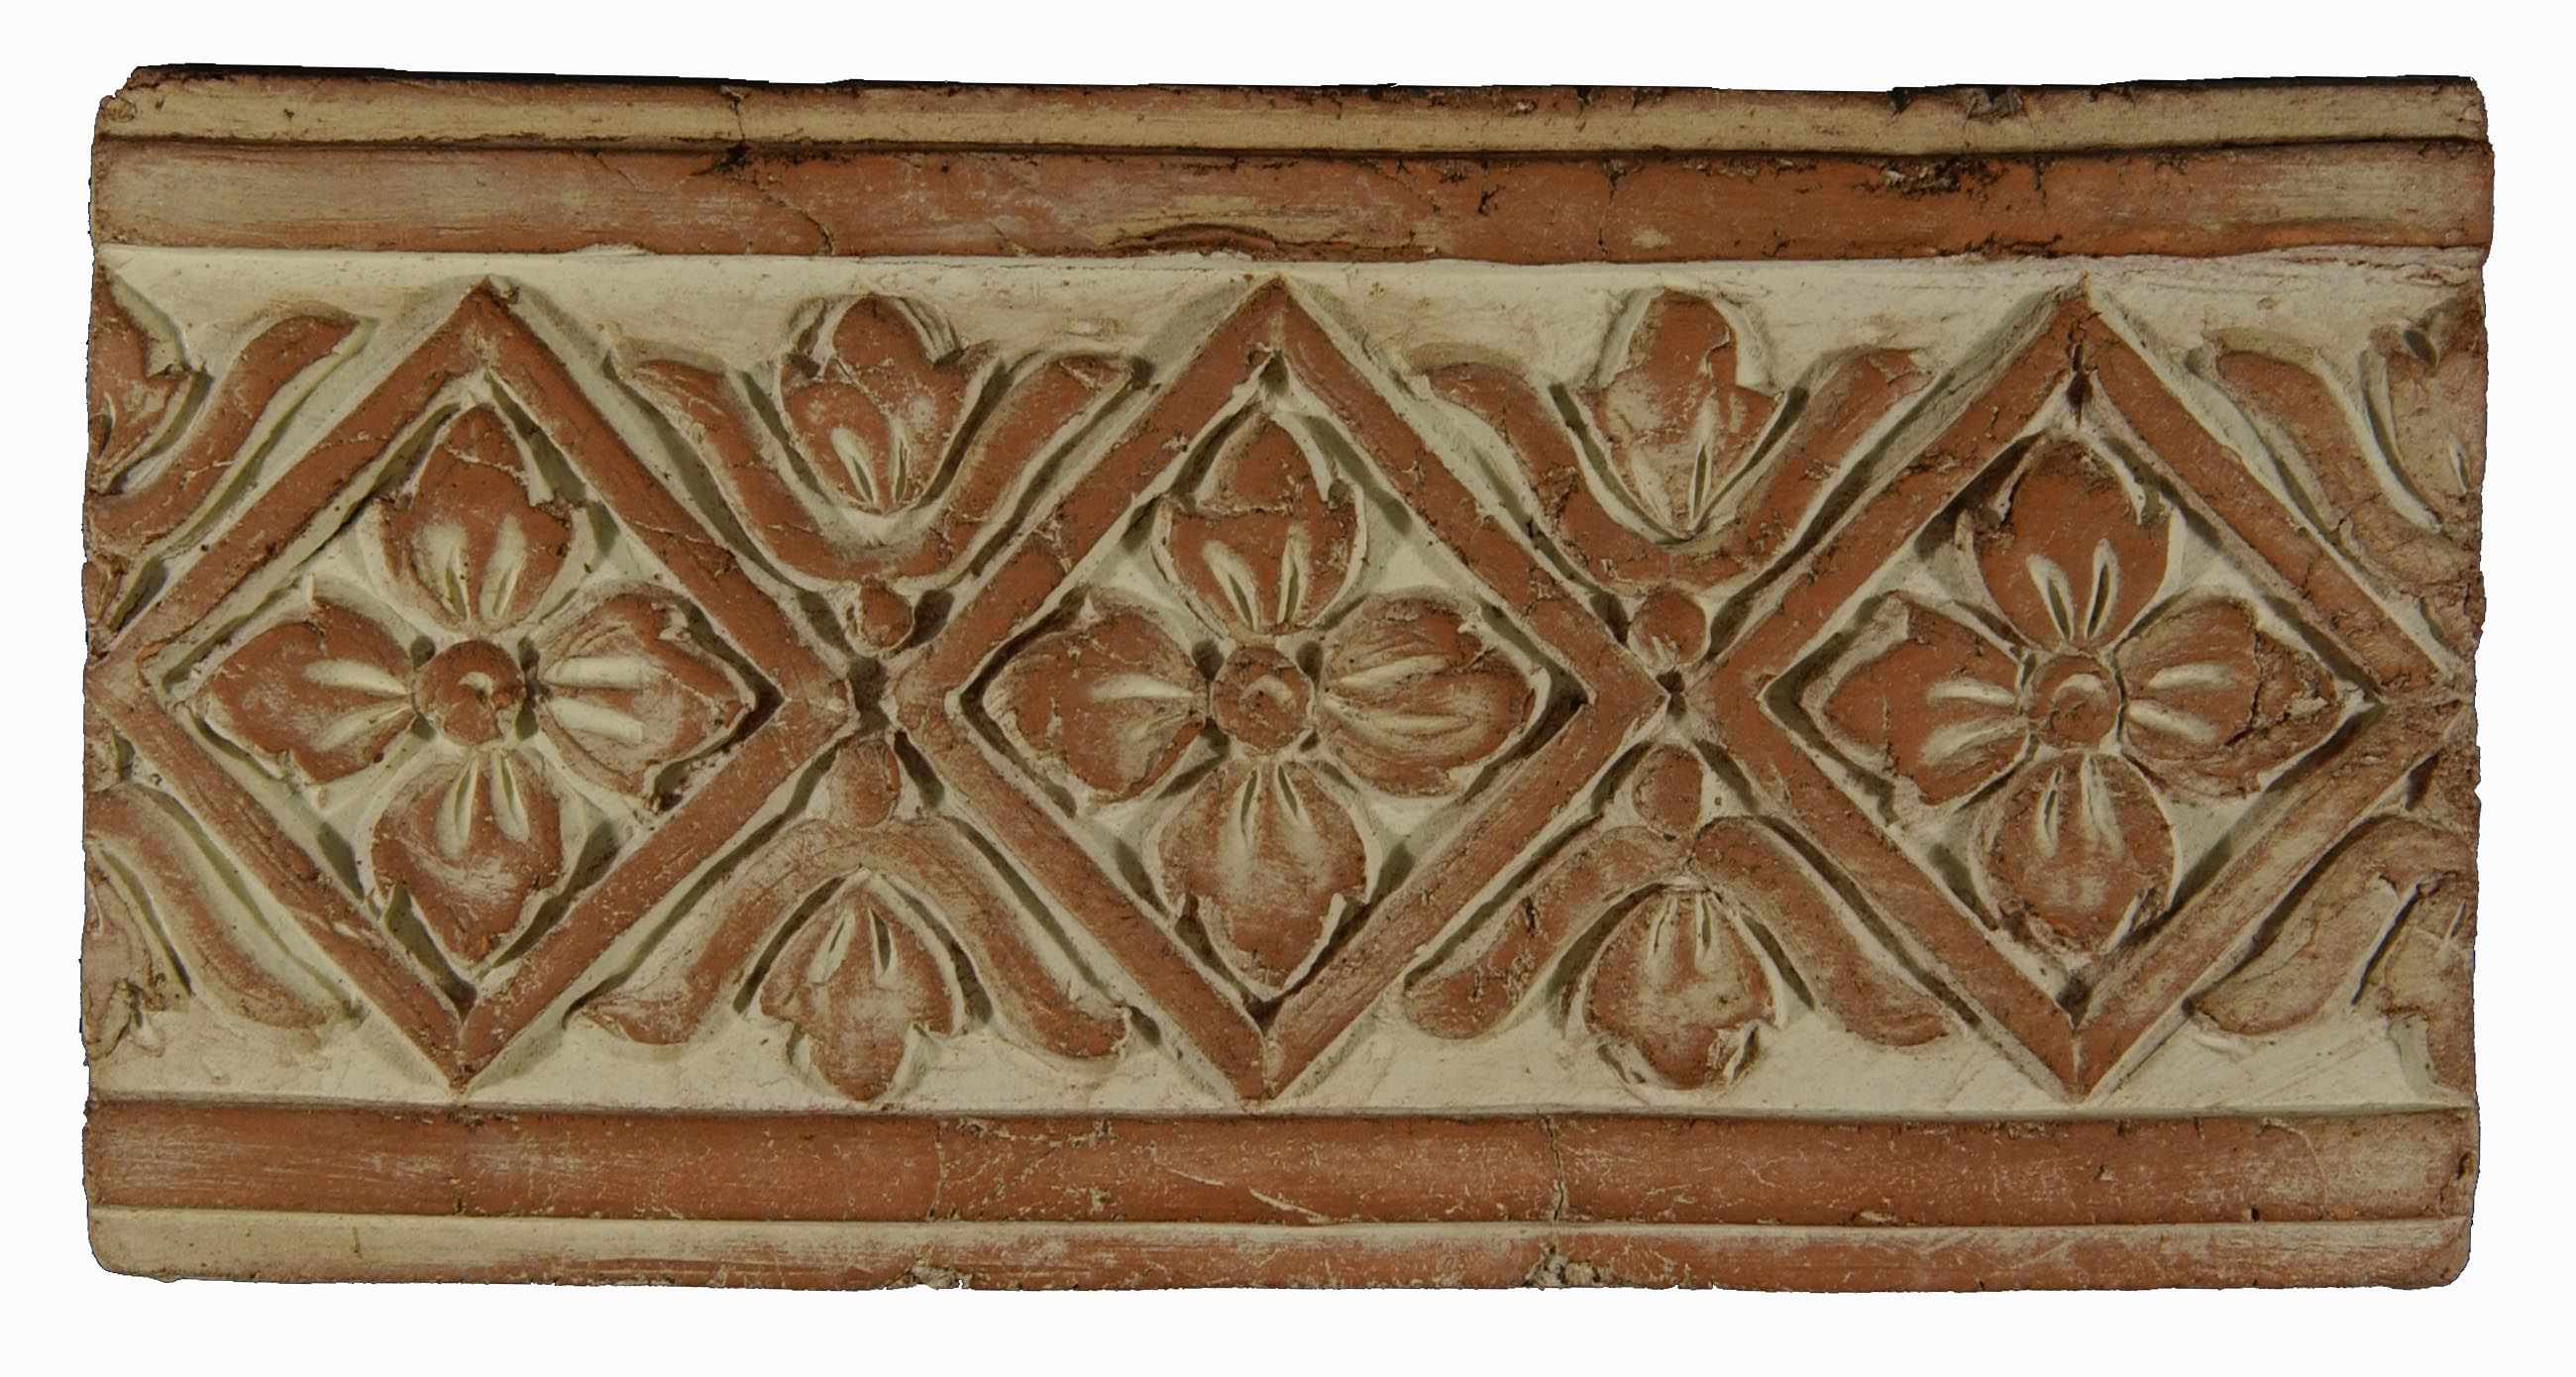 Decorative Relief Tiles Best Decorative Border  Italian Terracotta Tiles  Pinterest  Bath Design Decoration